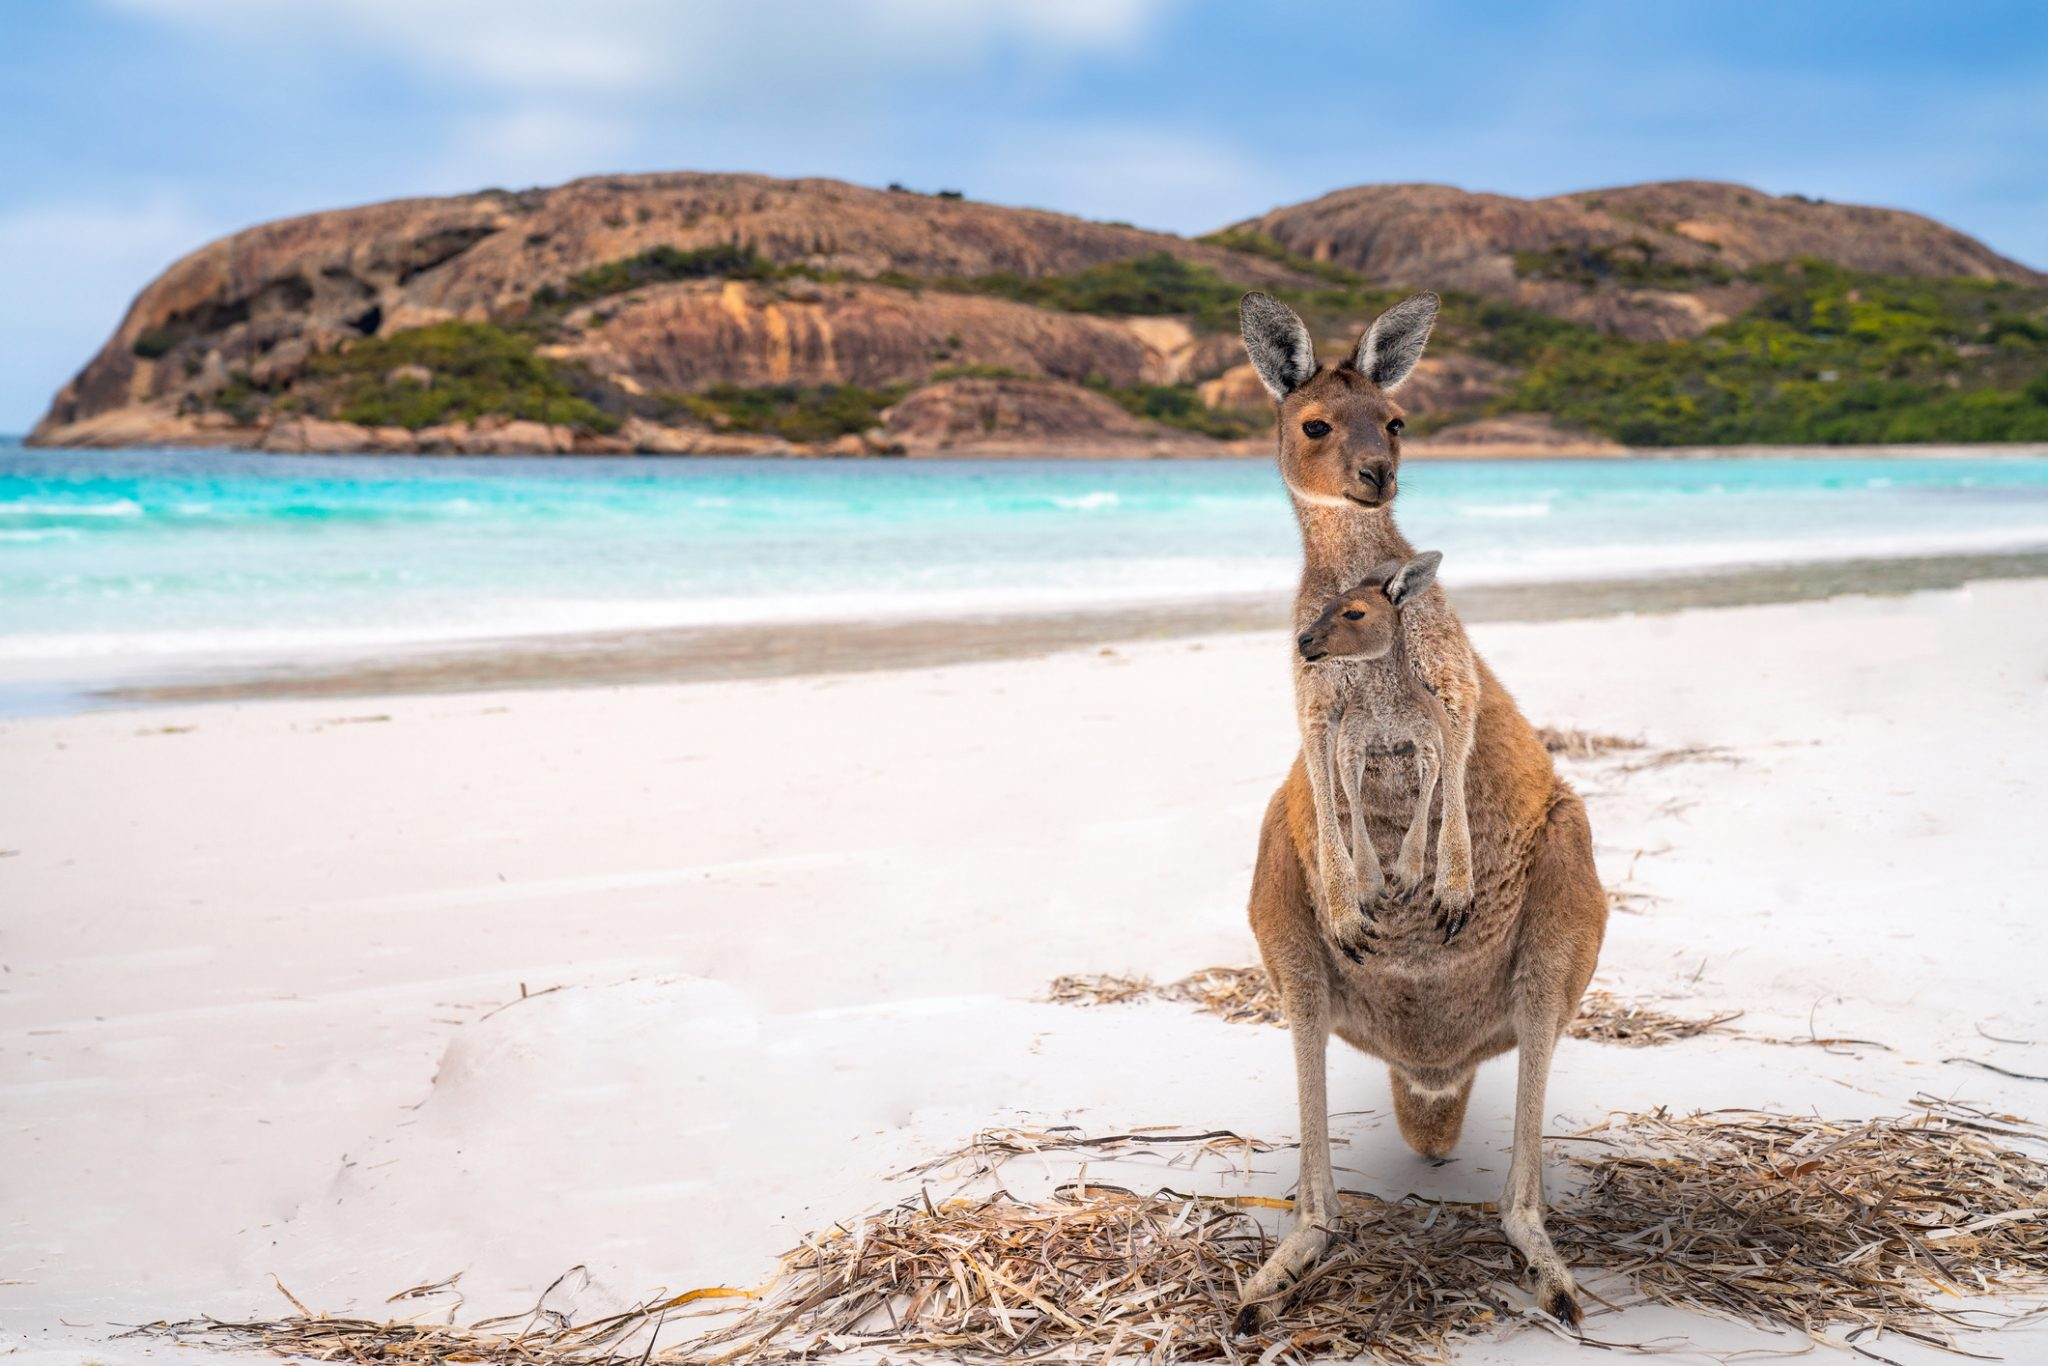 Kangaroo family, mother and baby in bag at Lucky Bay in the Cape Le Grand